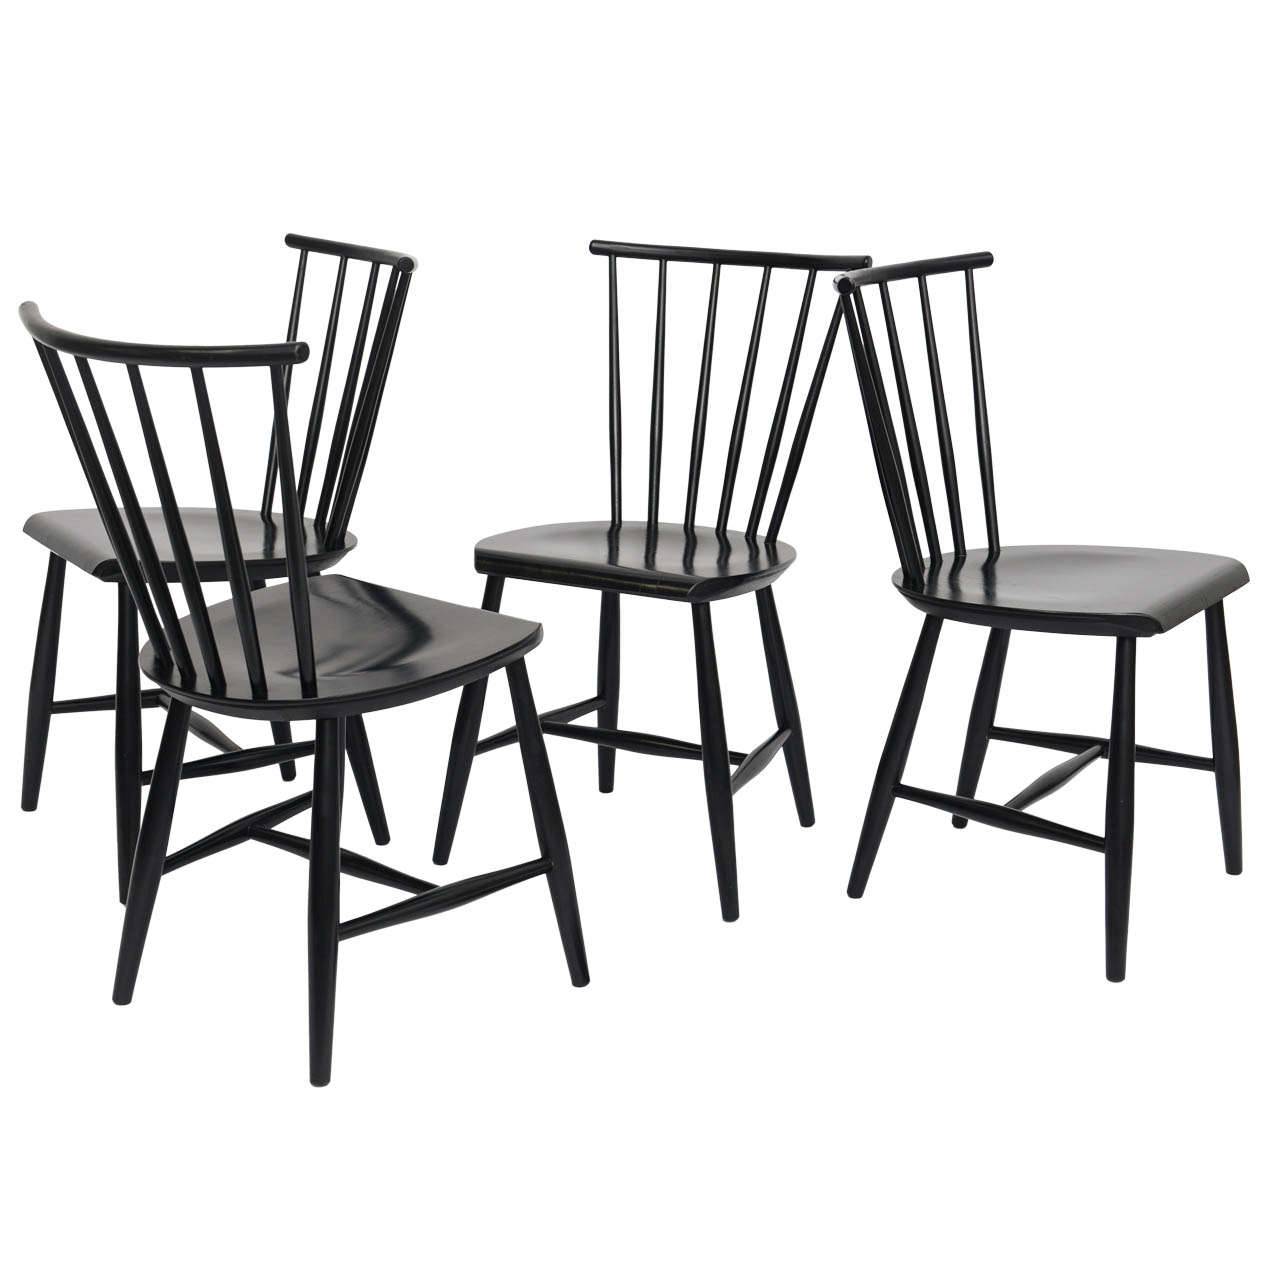 Windsor Chairs Black Four 1950s Swedish Windsor Style Spindle Back Dining Chairs